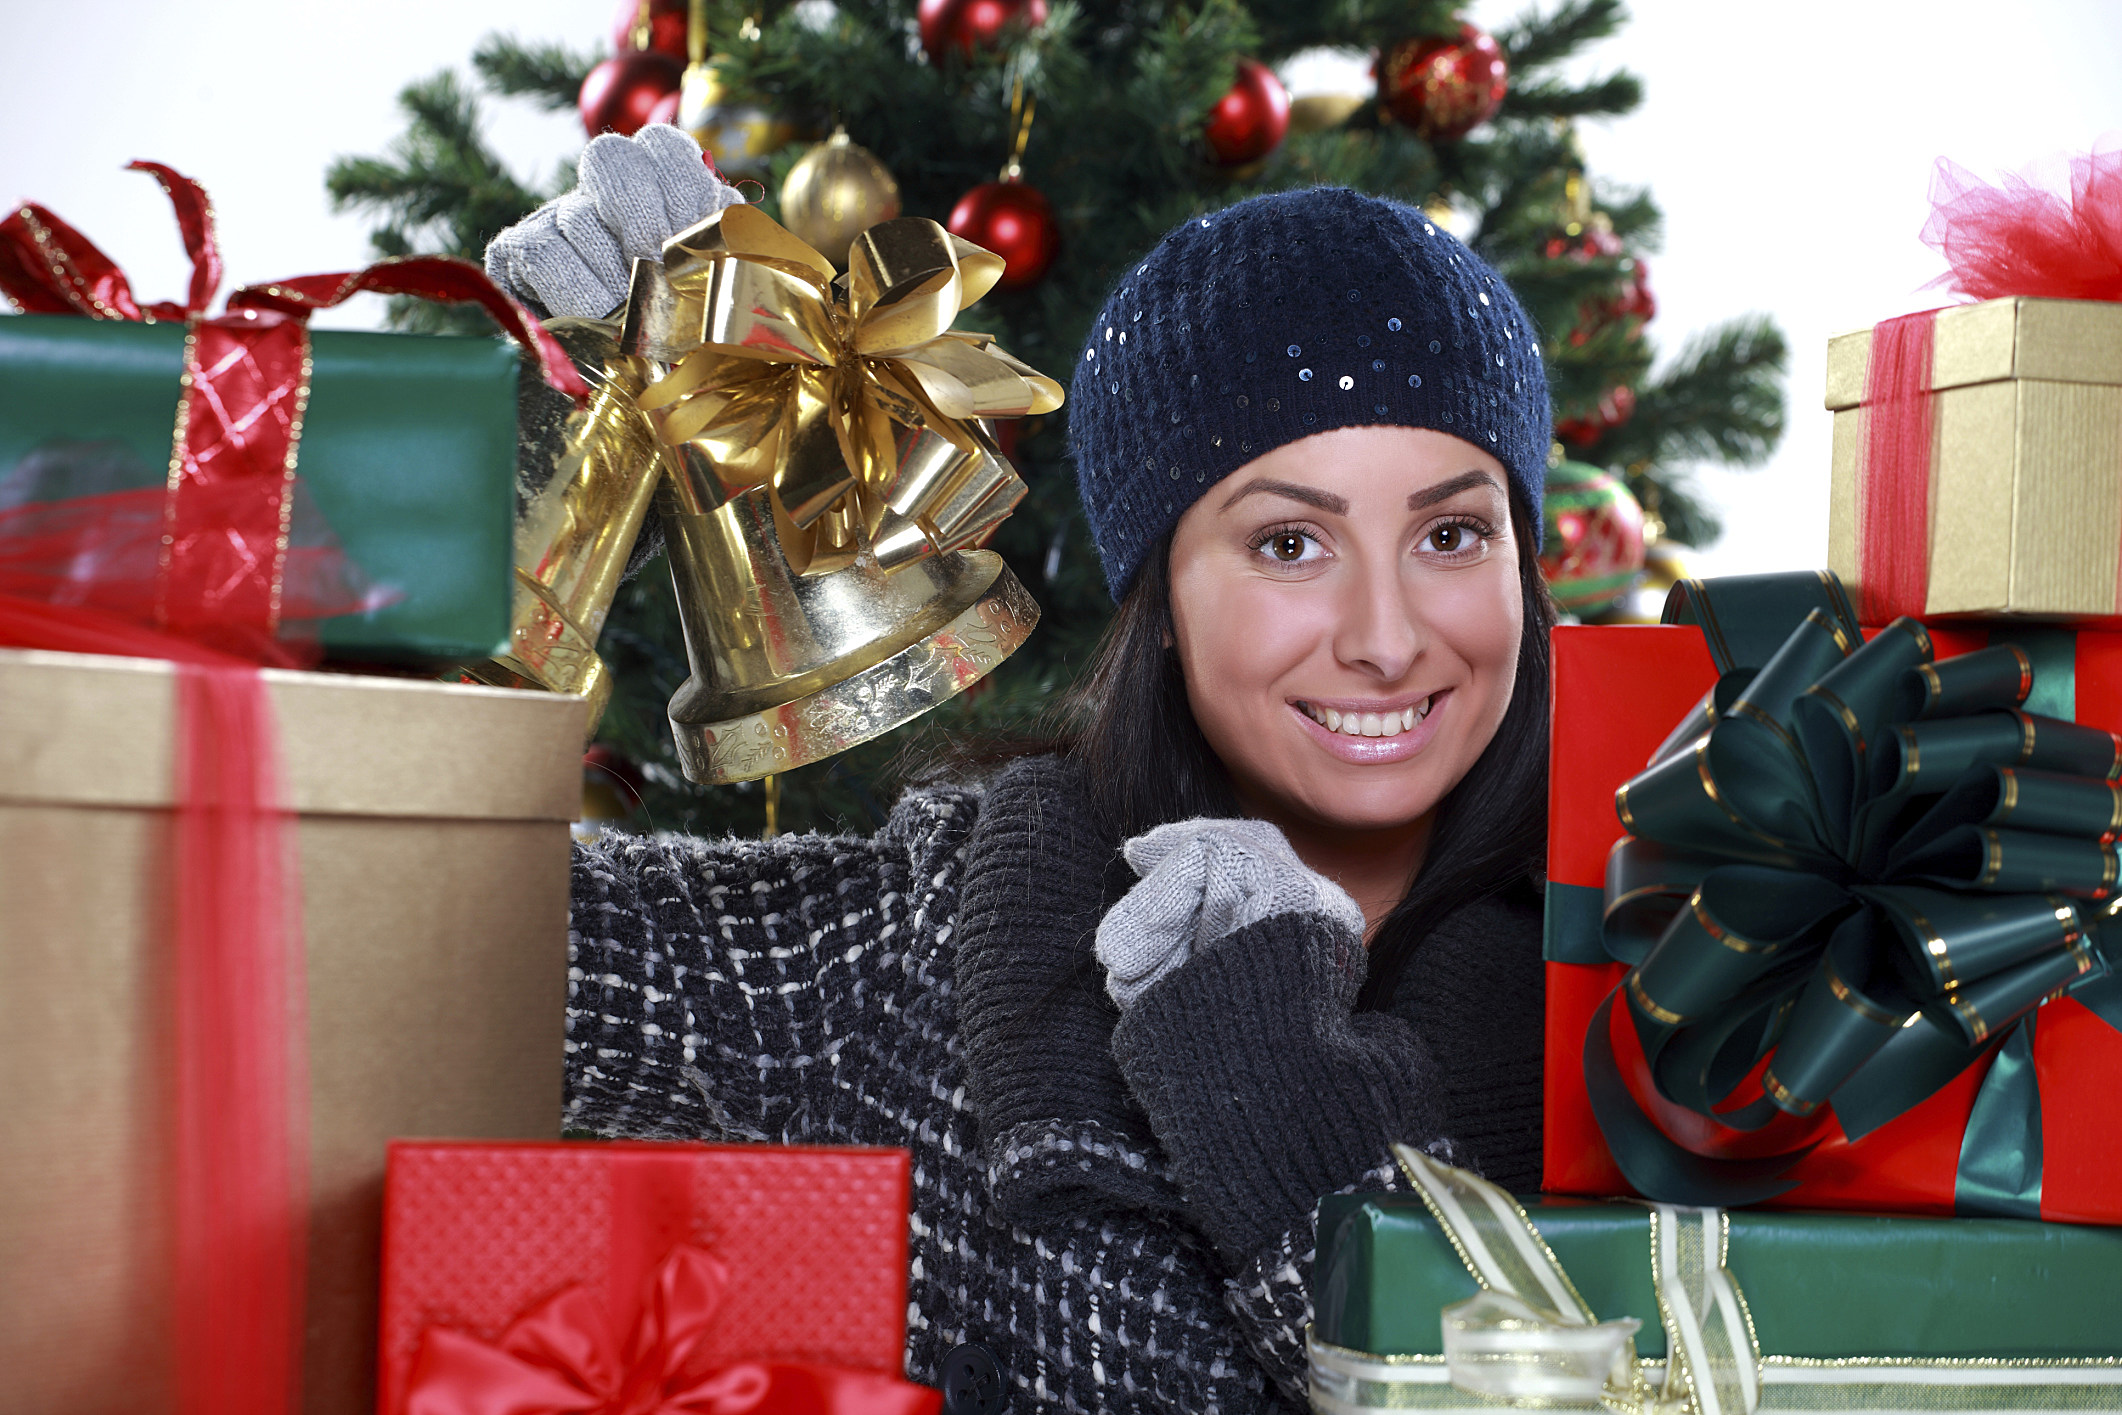 Why do you buy gifts at christmas